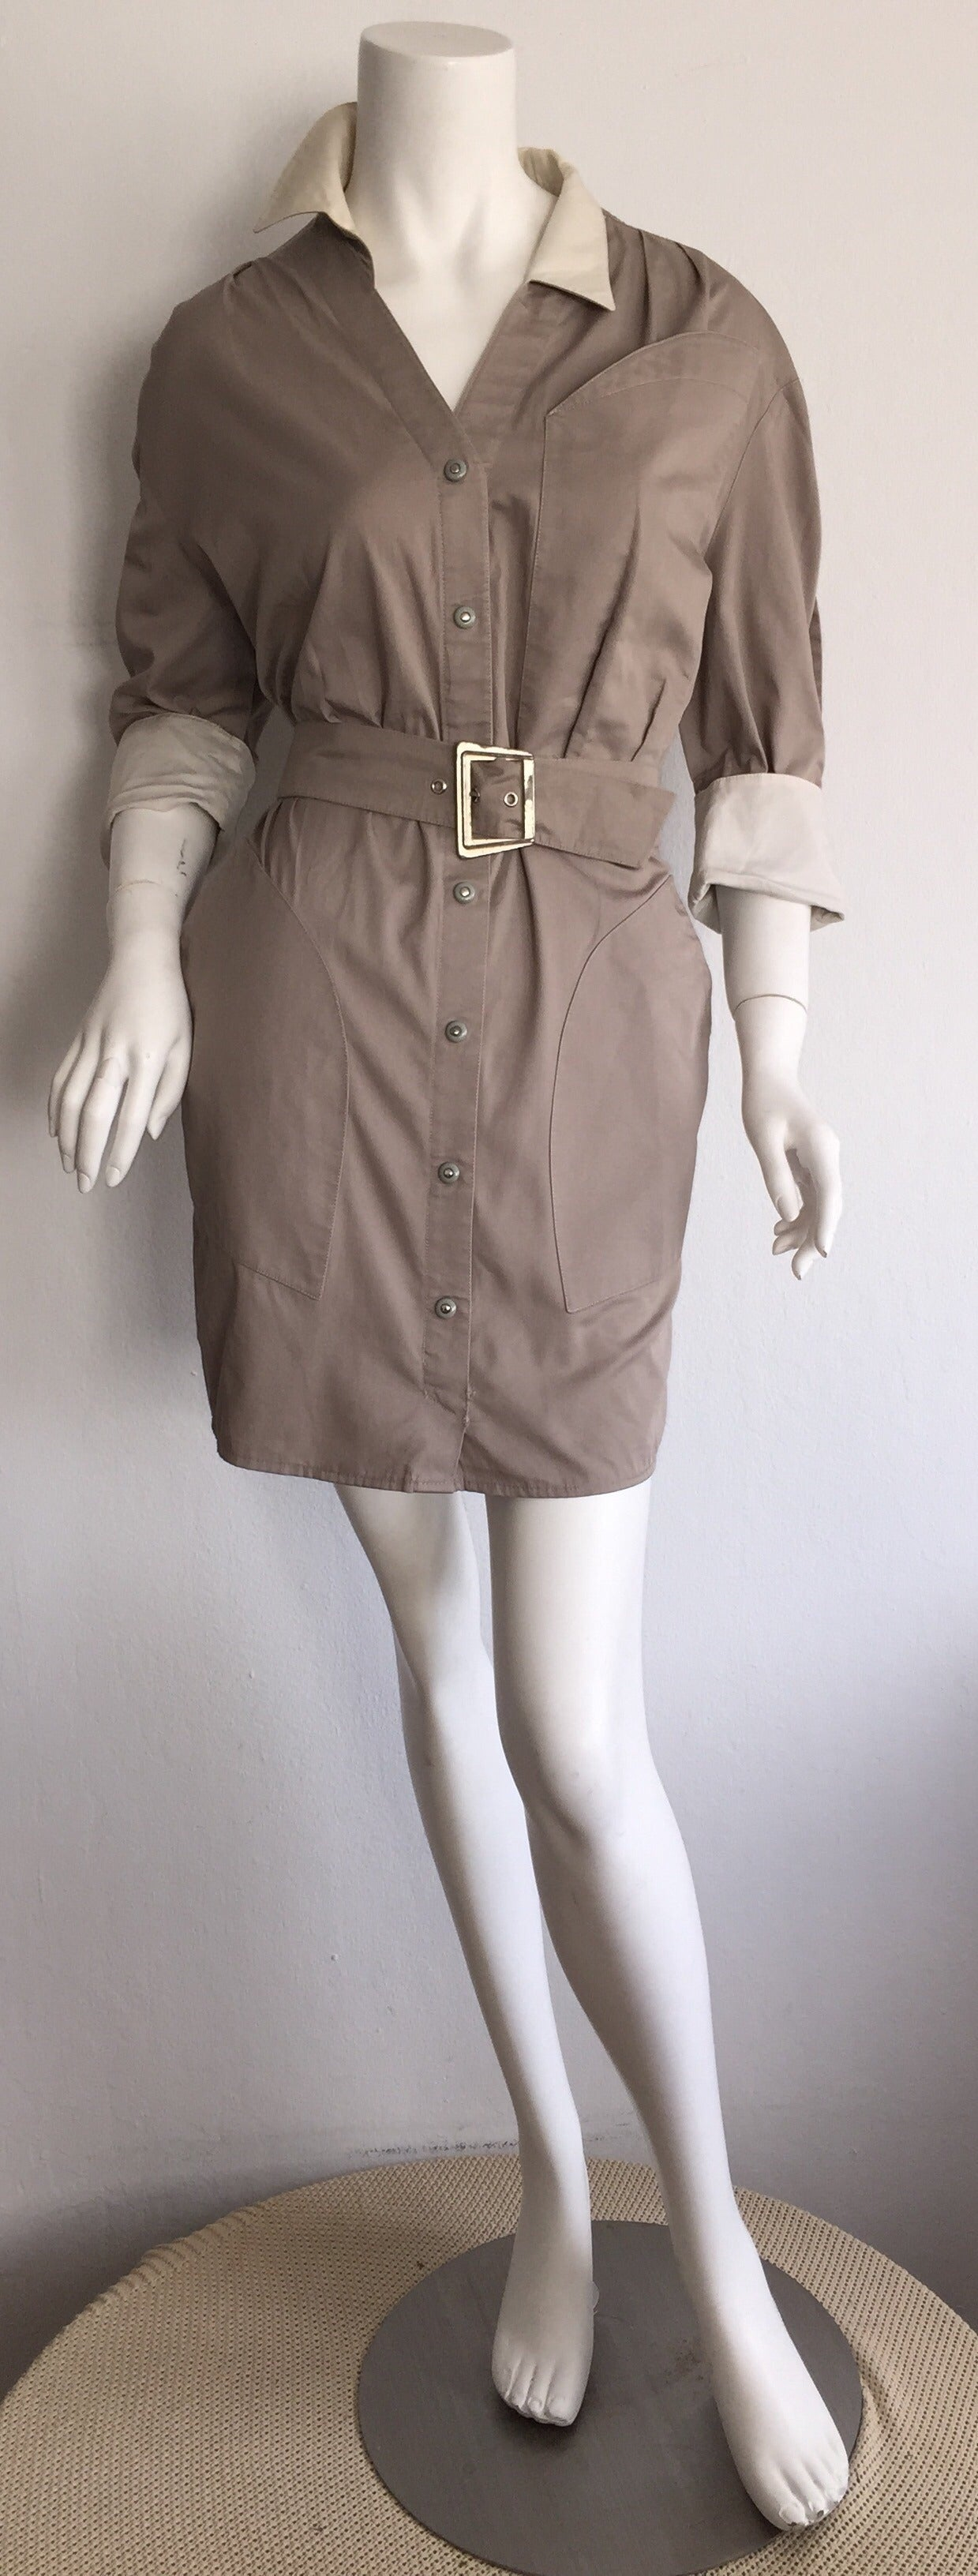 Sexy Vintage Thierry Mugler Avant Garde Belted Khaki Safari Shirt Dress 2